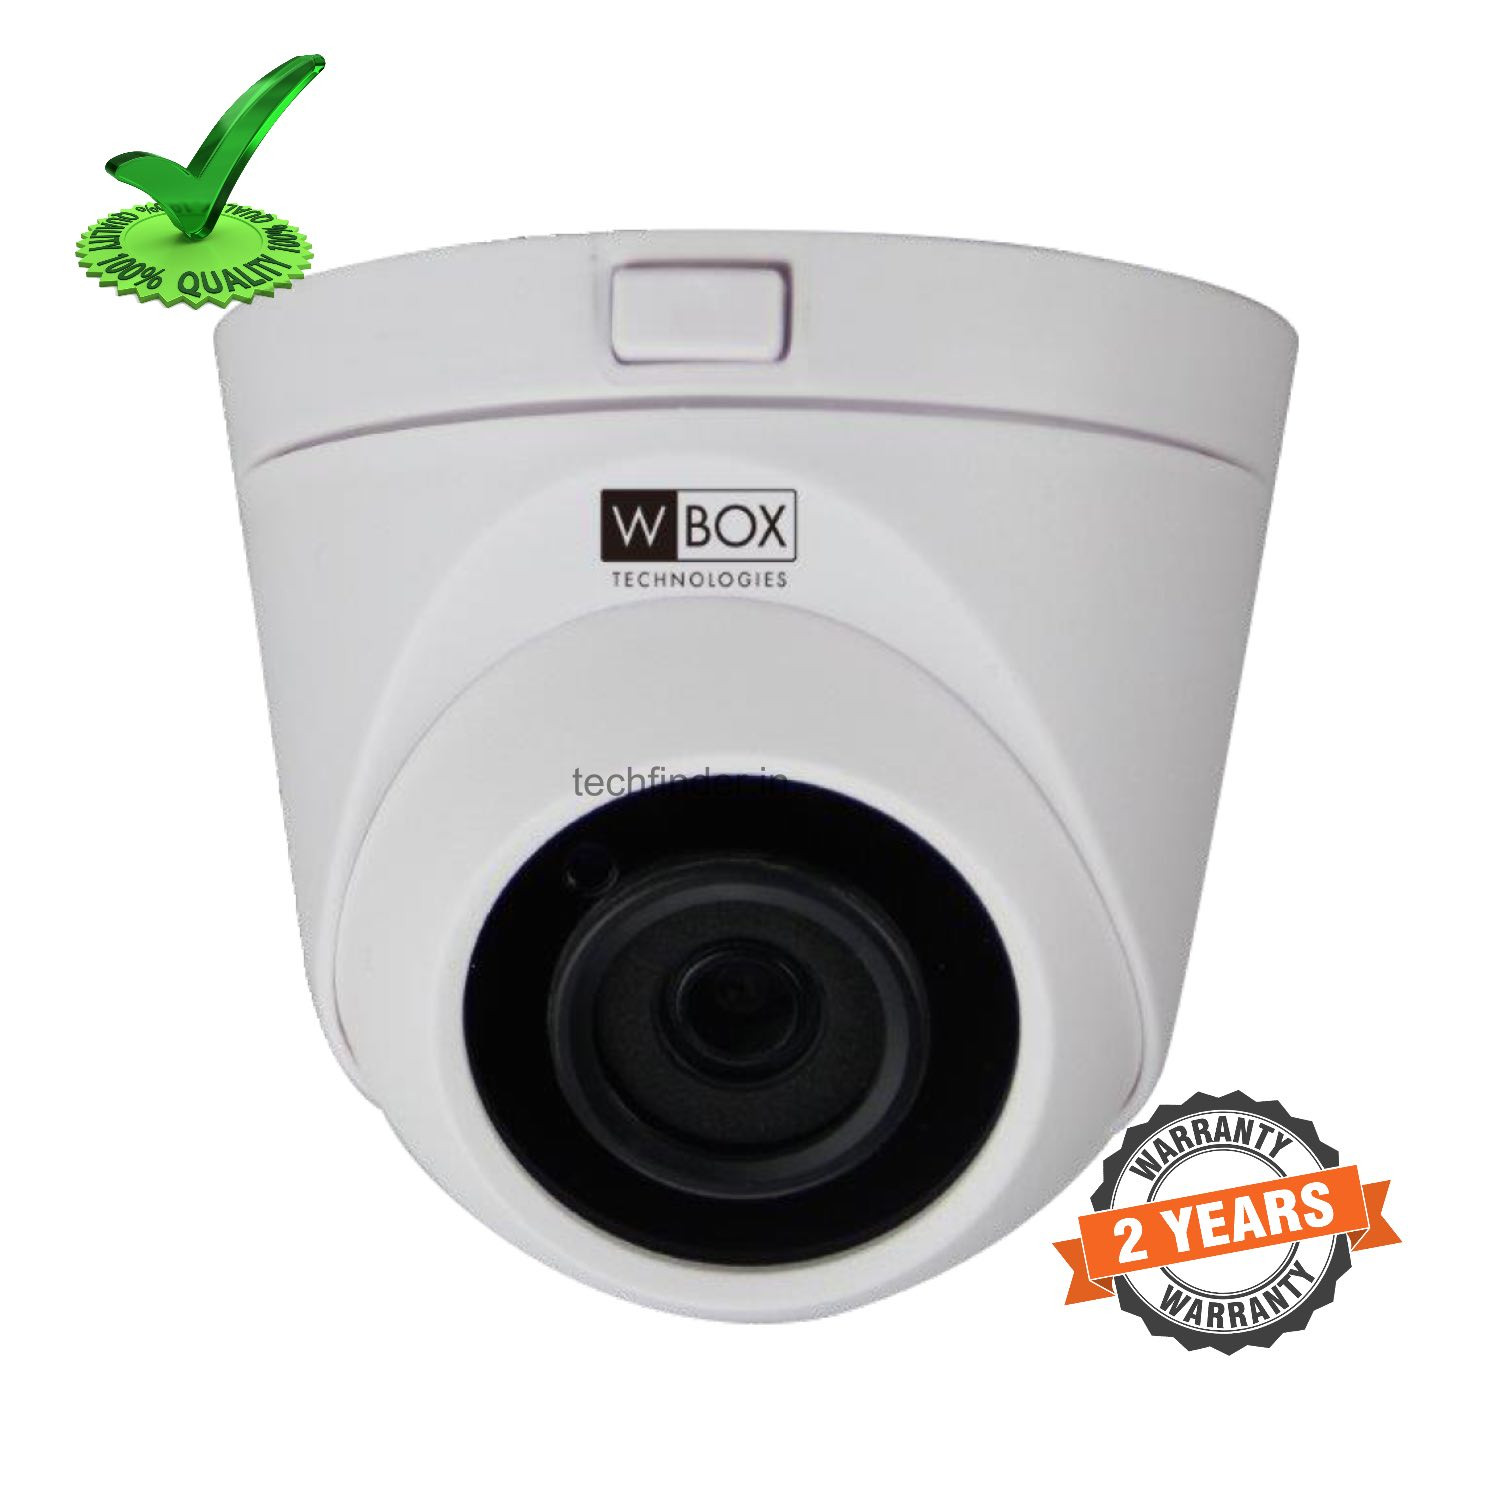 W Box WBC-0ECLHD5R2FSE AHD 5mp Metal Body IR Dome Camera